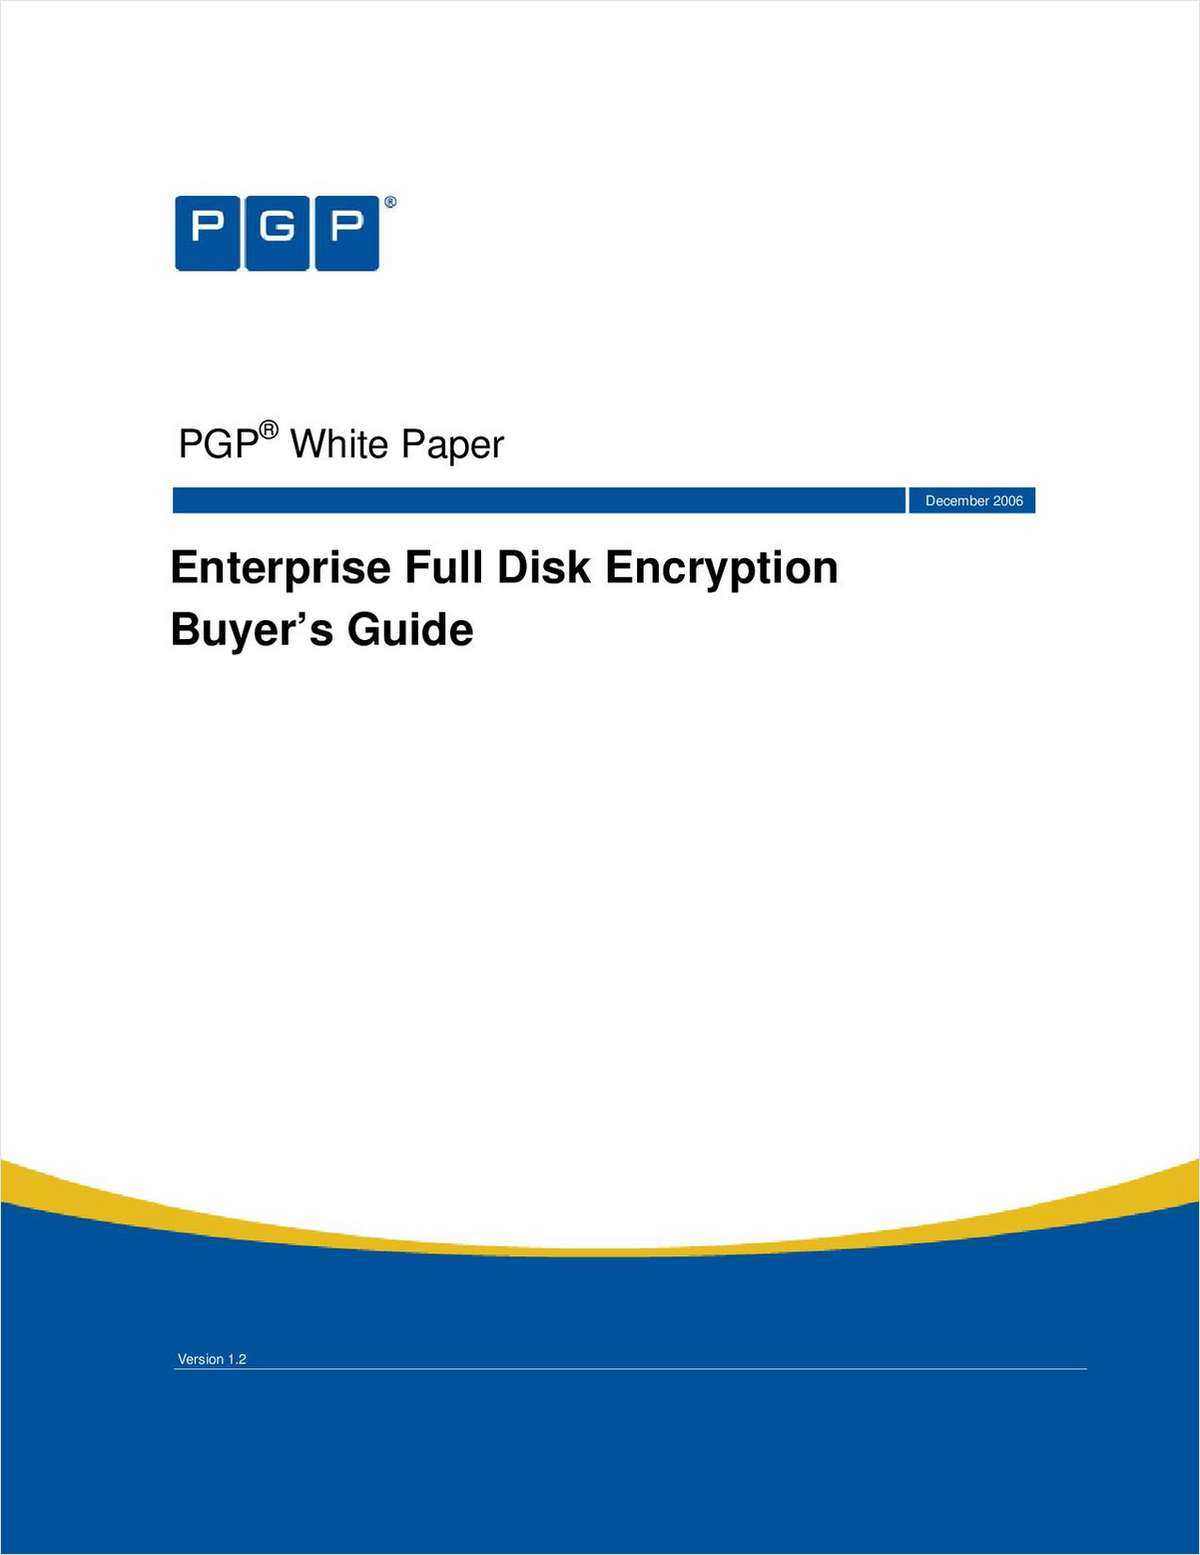 Enterprise Full Disk Encryption Buyer's Guide